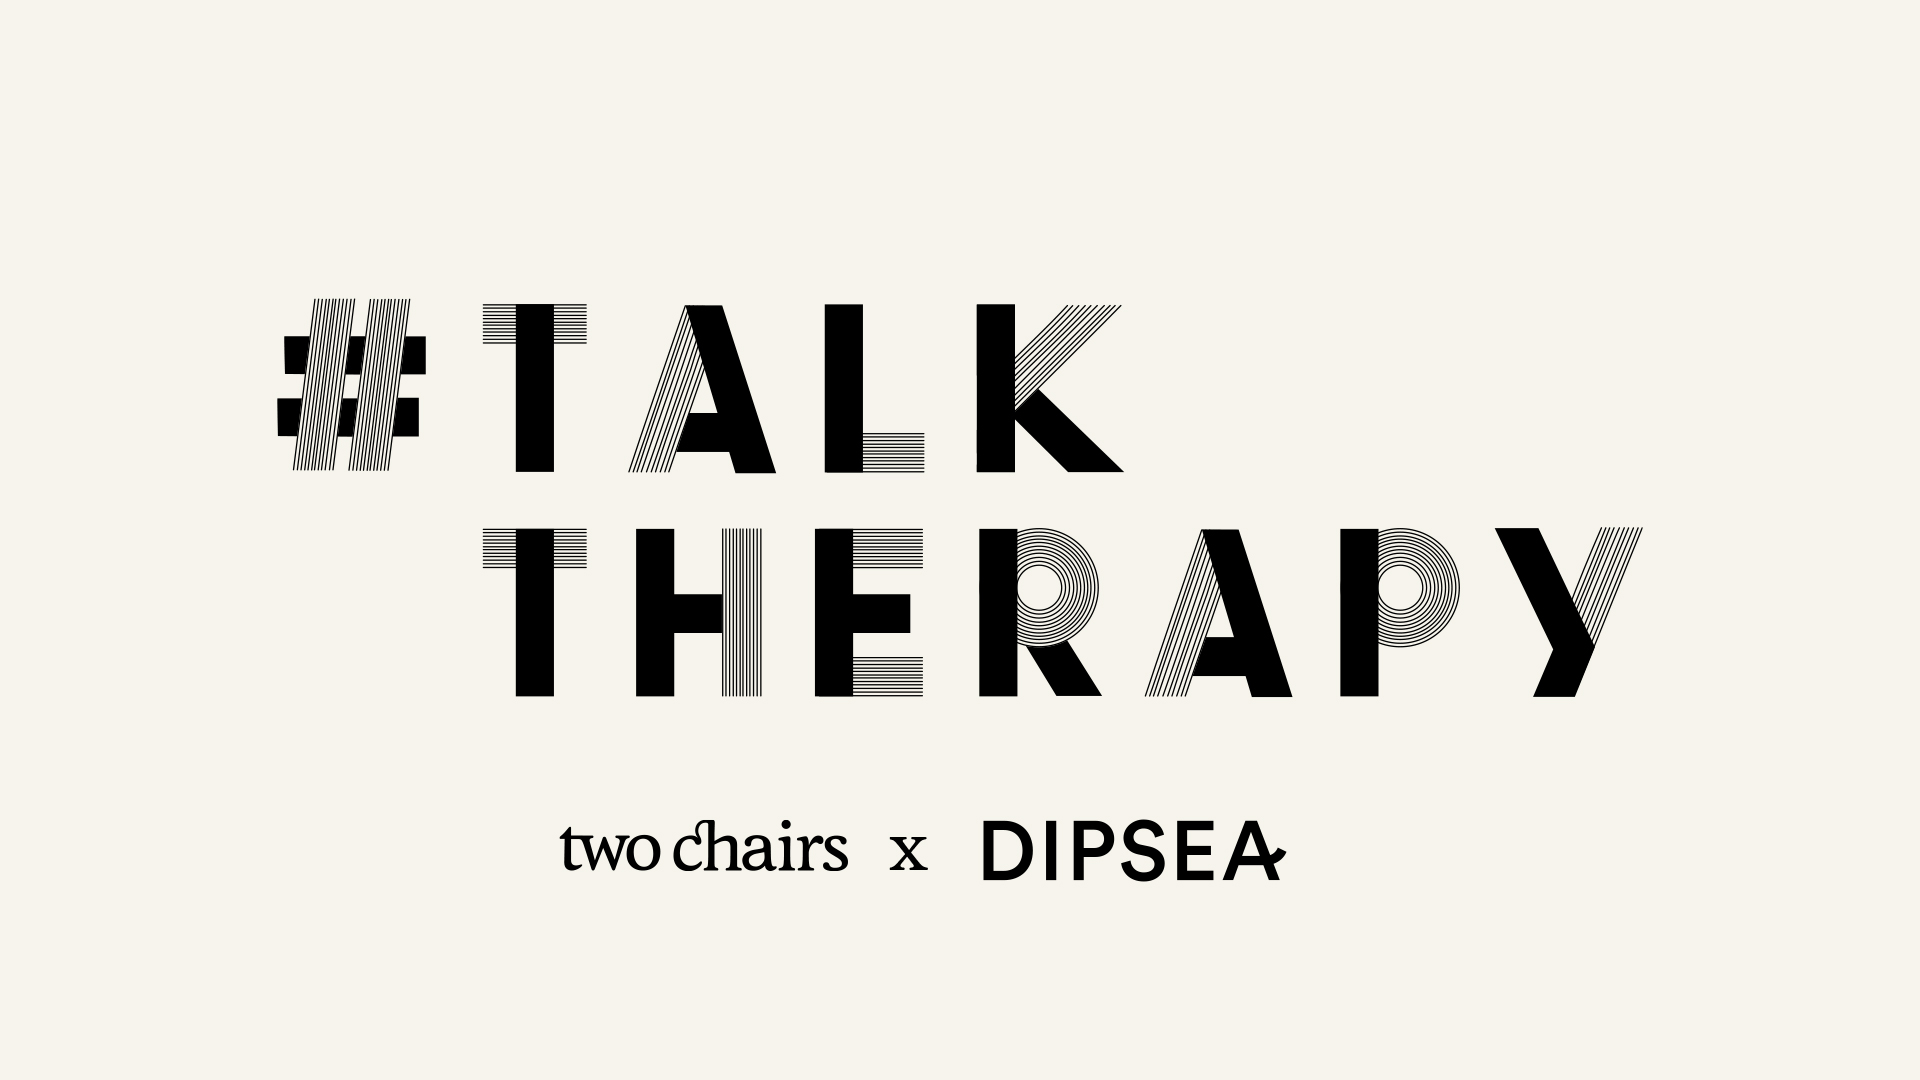 #TalkTherapy with Gina Gutierrez, Co-founder and CEO of Dipsea